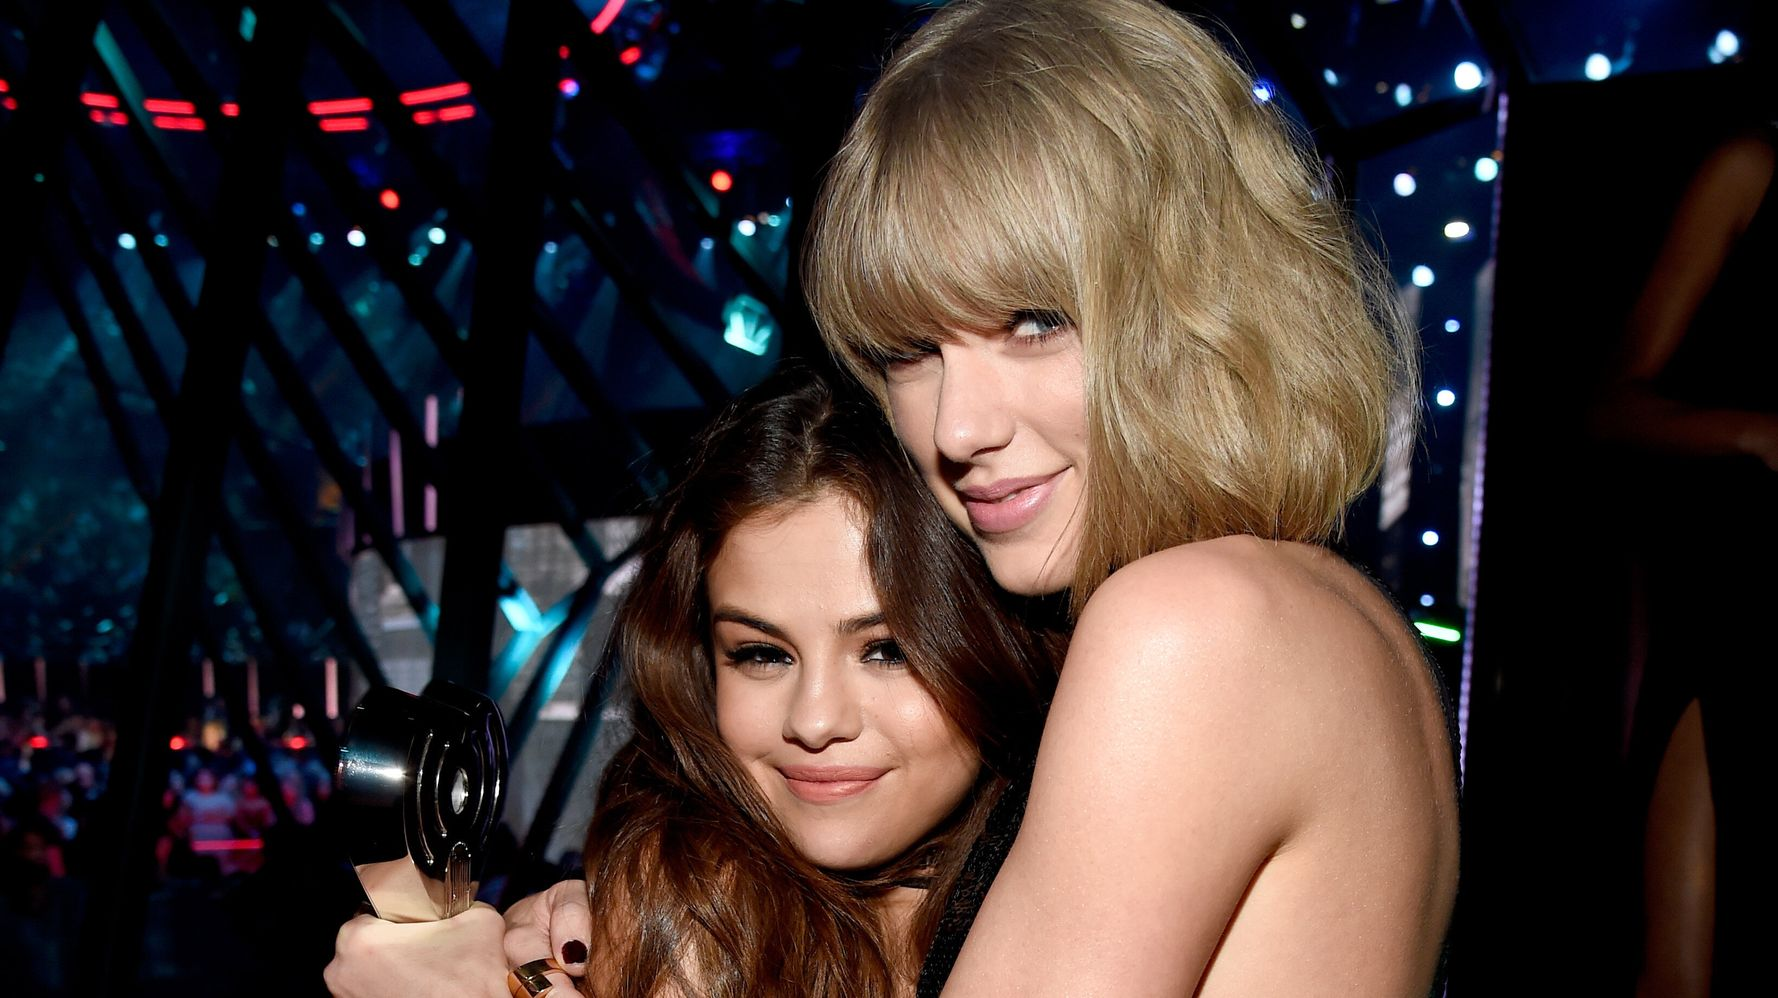 Selena Gomez, Halsey And Others Support Taylor Swift Amid Music Rights Controversy